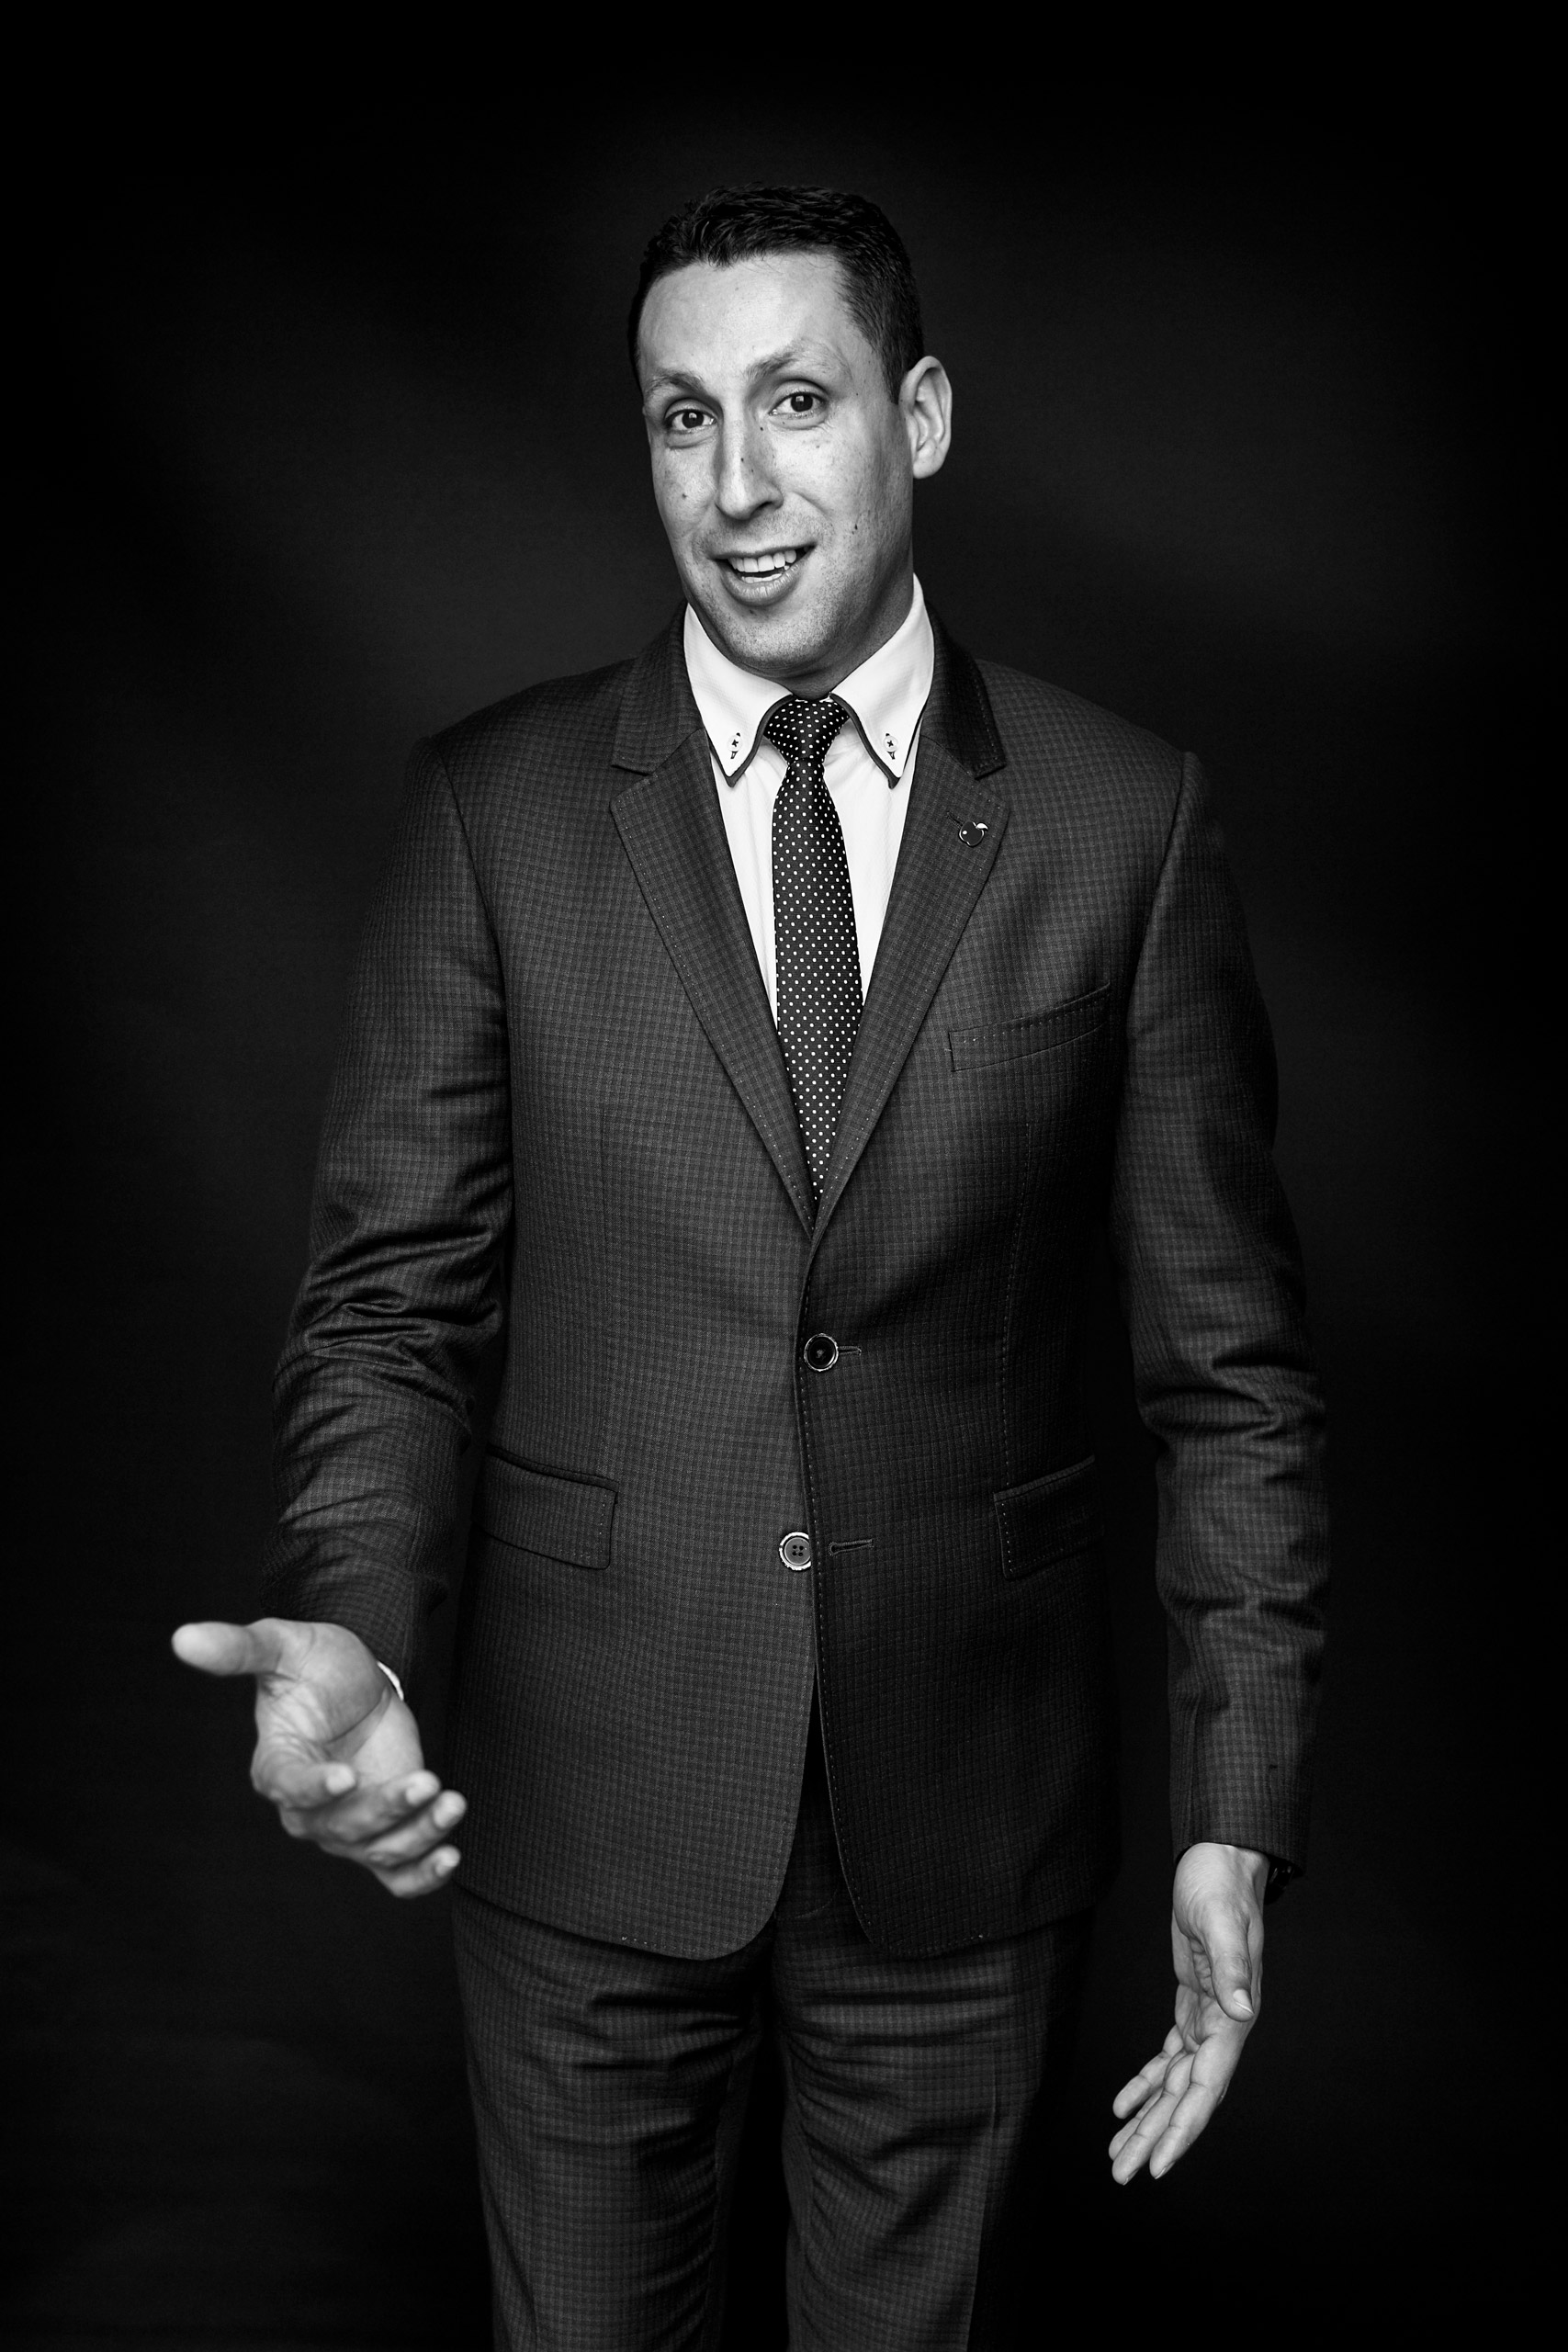 guy-lavoipierre-press-club-staff-portraits-02